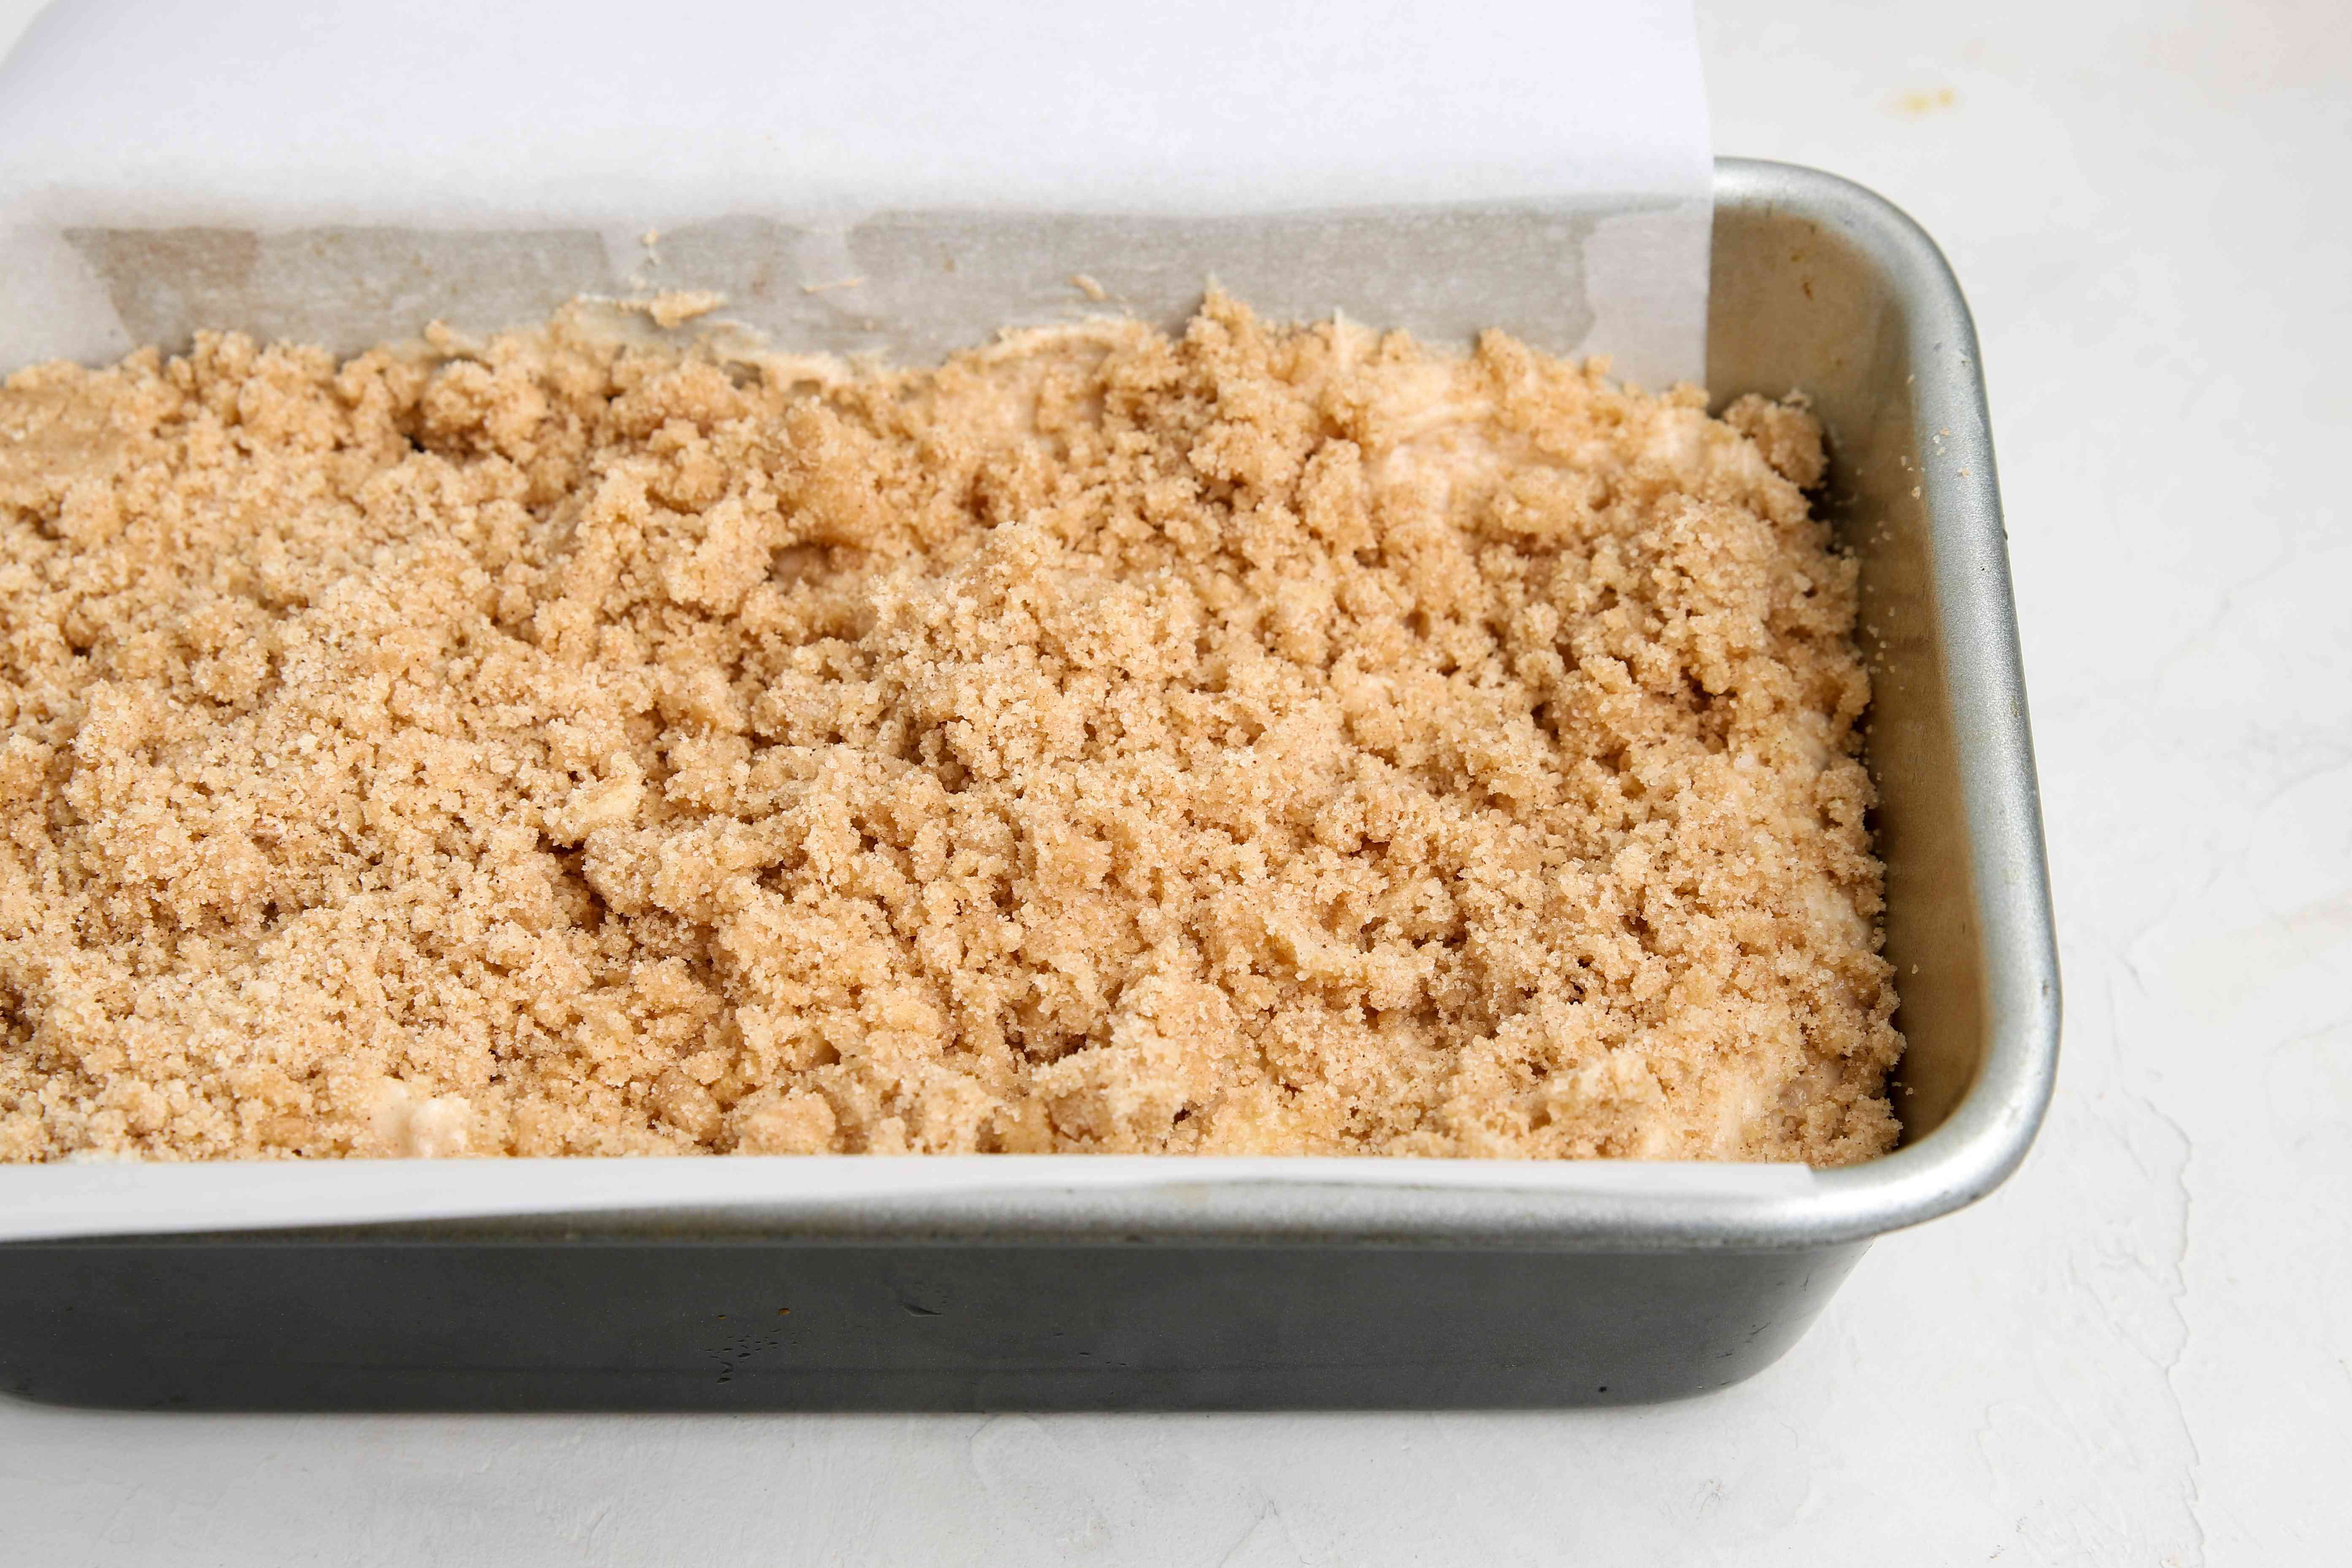 Loaf pan with cinnamon streusel apple bread ready to be baked.